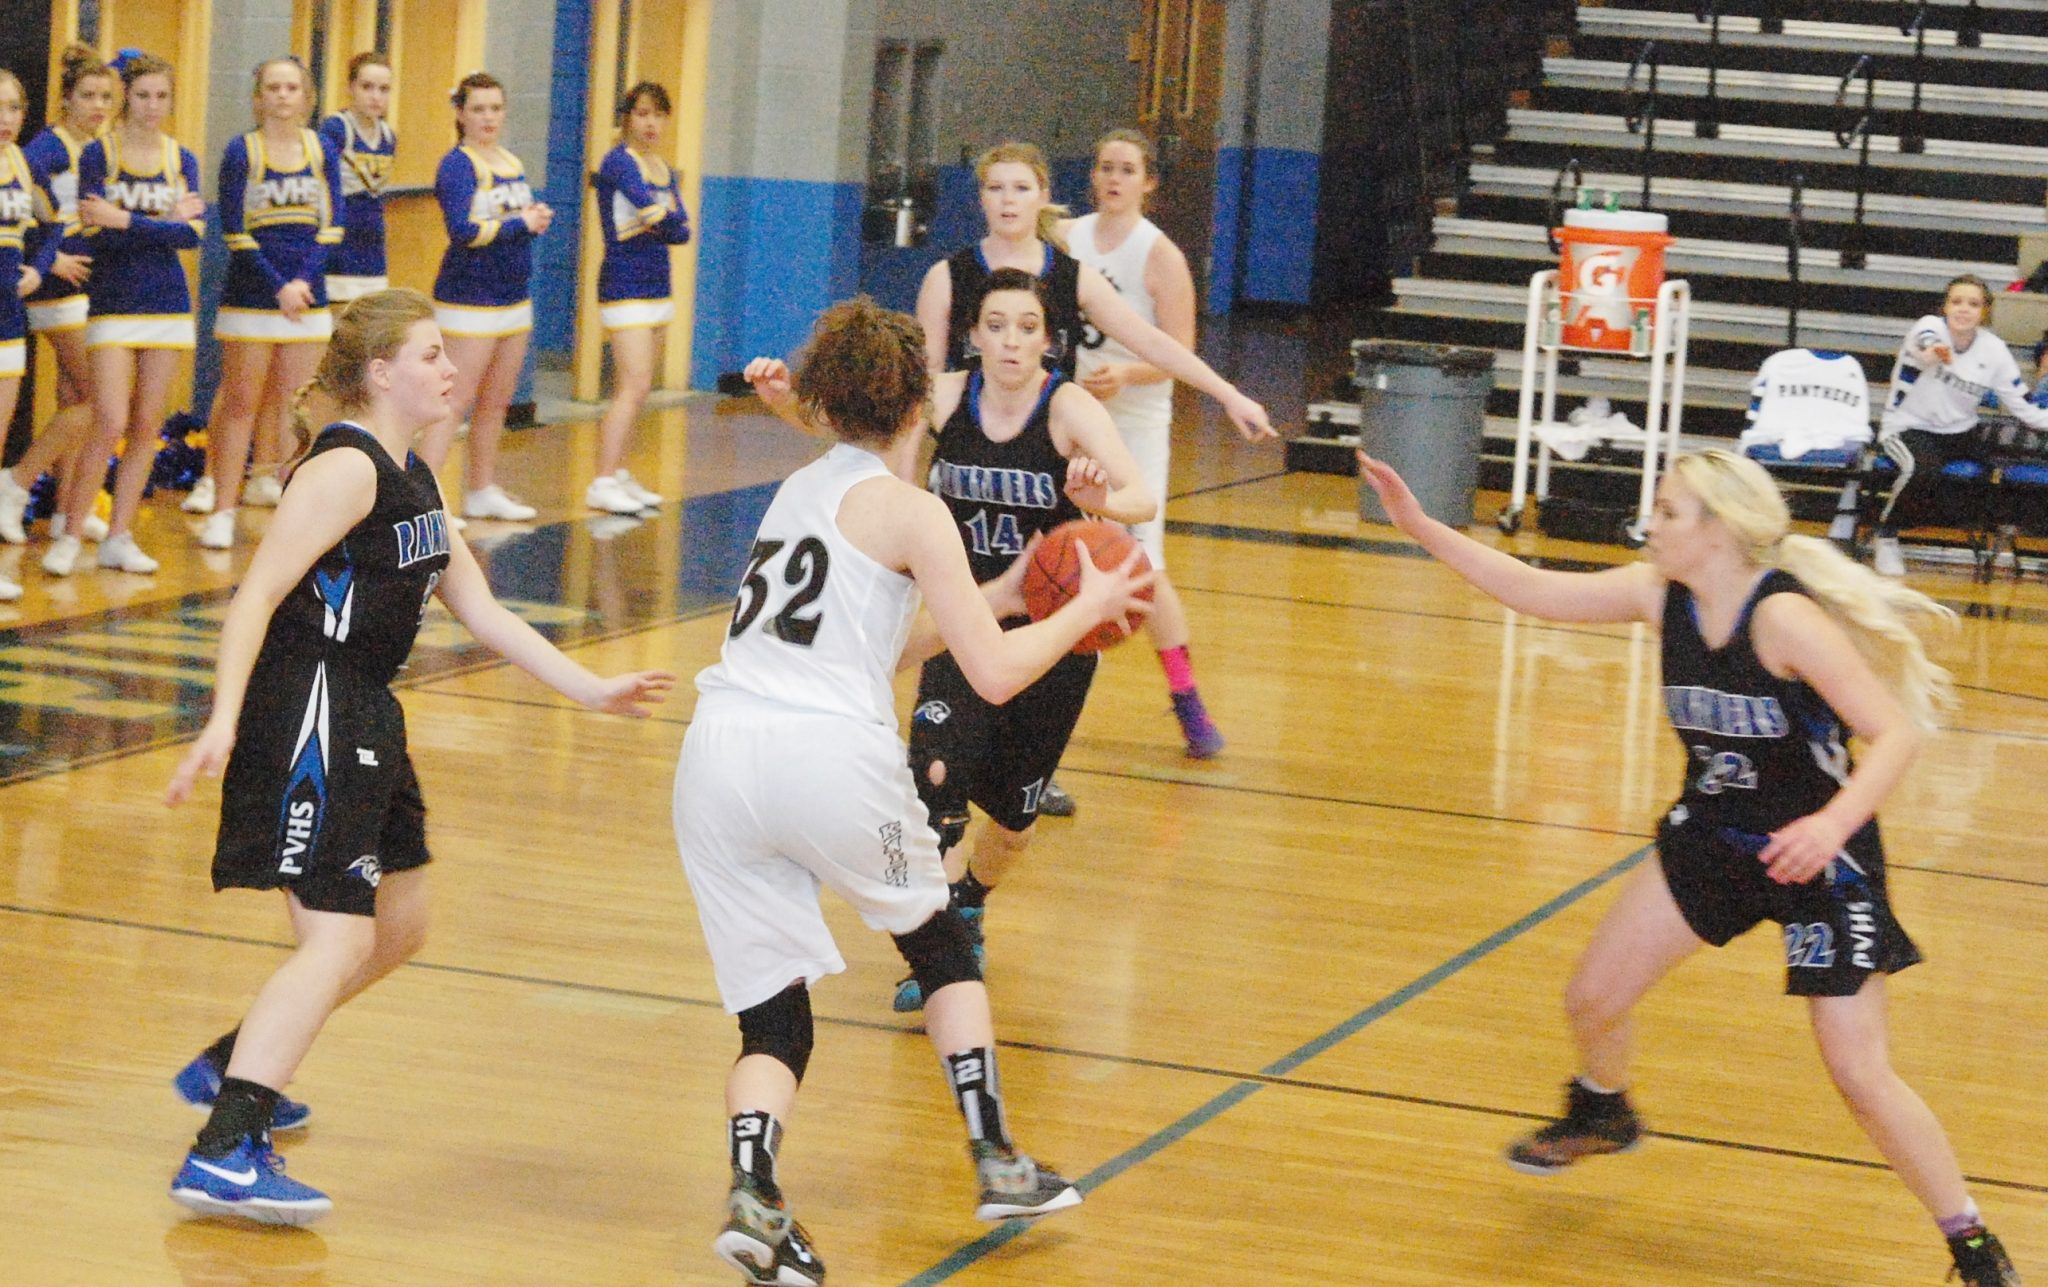 Pahranagat Valley girls qualify for state tourney